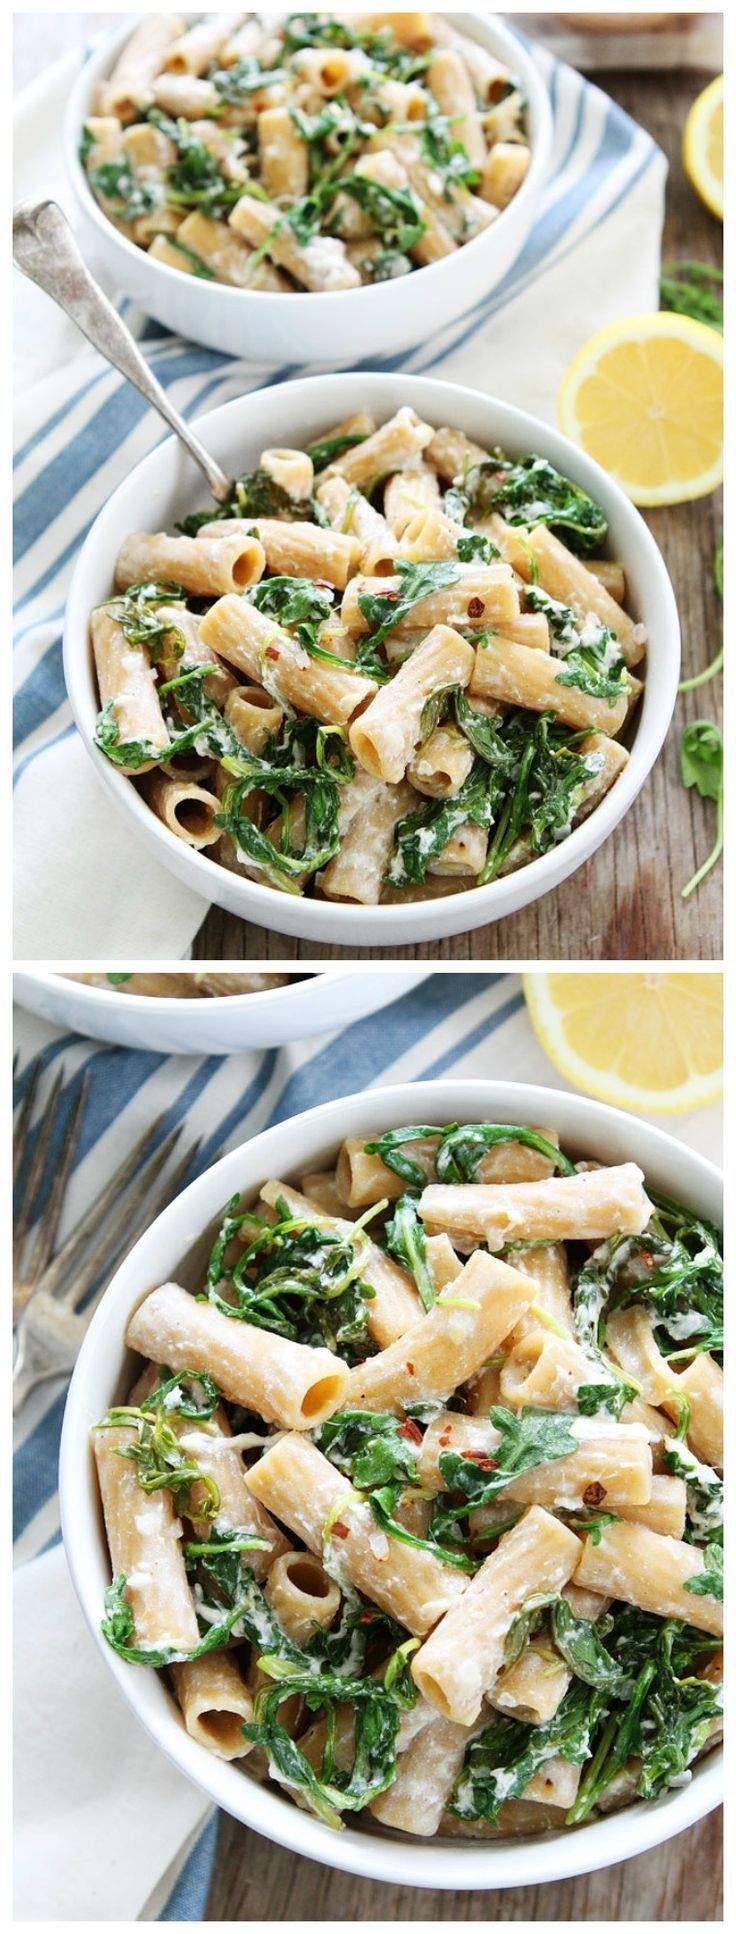 Lemon Arugula Pasta with Burrata Recipe on http://twopeasandtheirpod.com You only need seven ingredients and 30 minutes to make this creamy, cheese pasta dish! It is a dinner favorite!